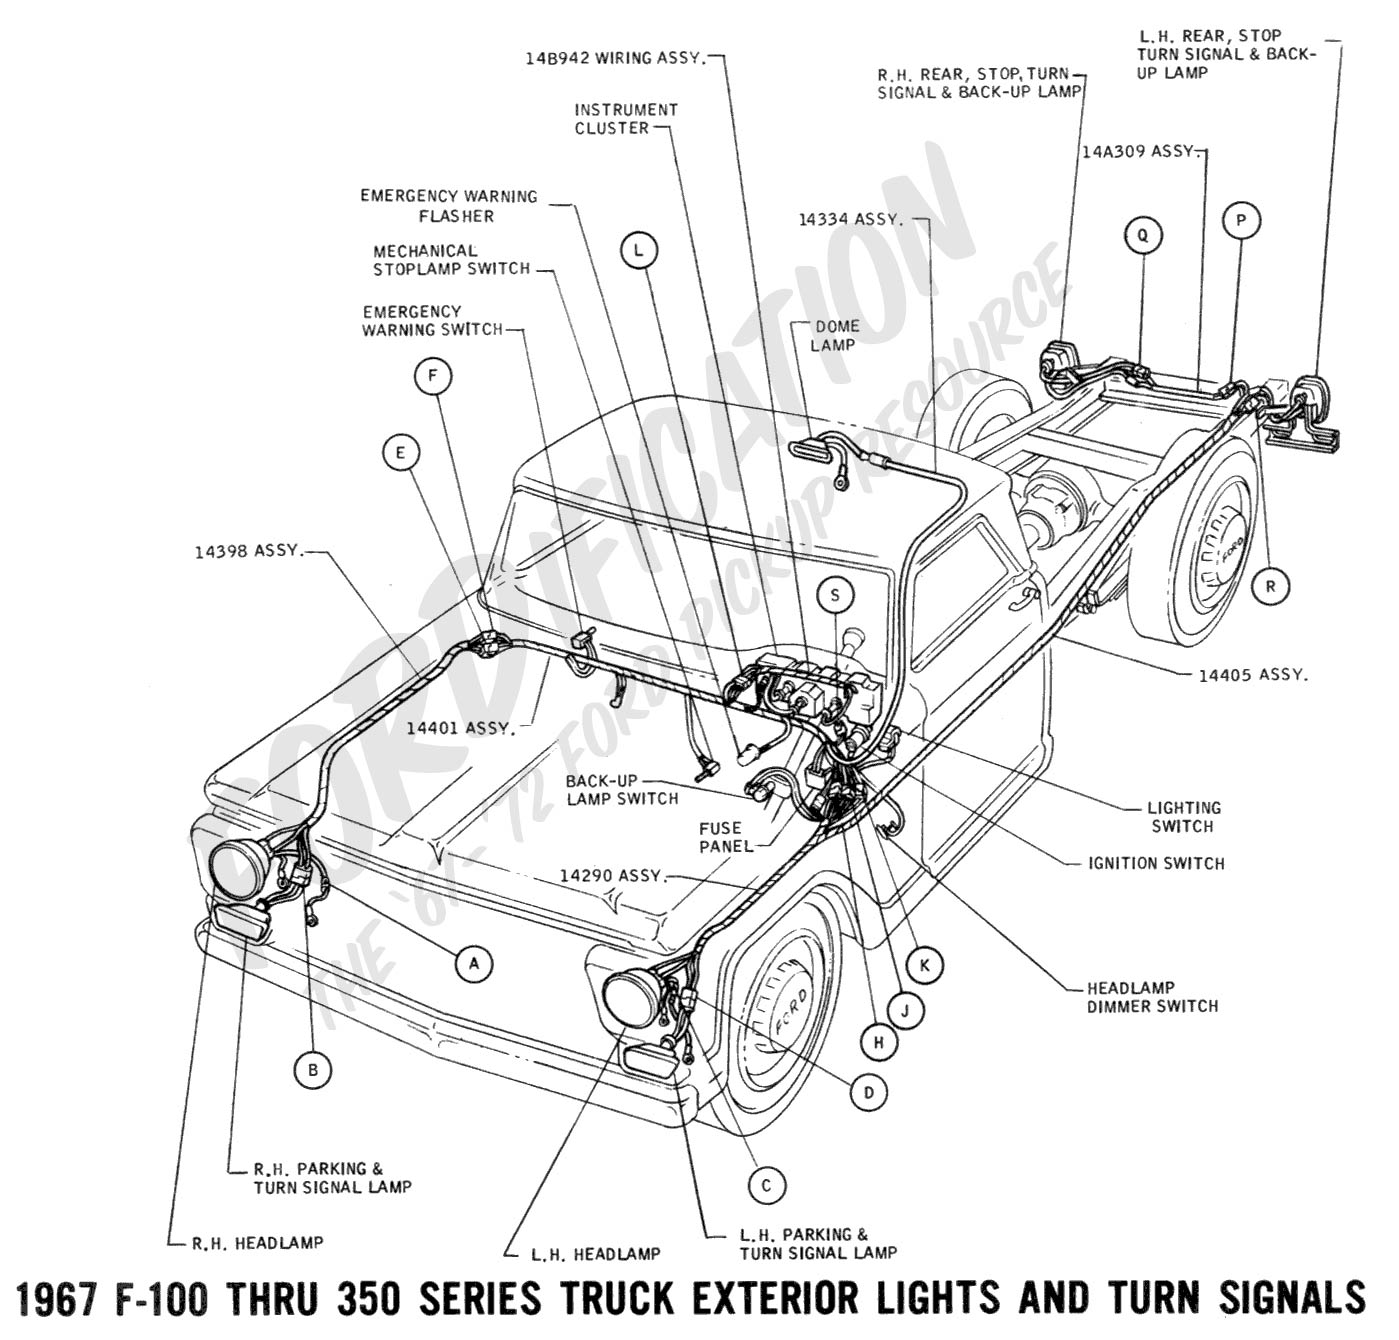 wiring 1967extlights01 ford truck technical drawings and schematics section h wiring 1999 ford f150 turn signal wiring diagram at panicattacktreatment.co